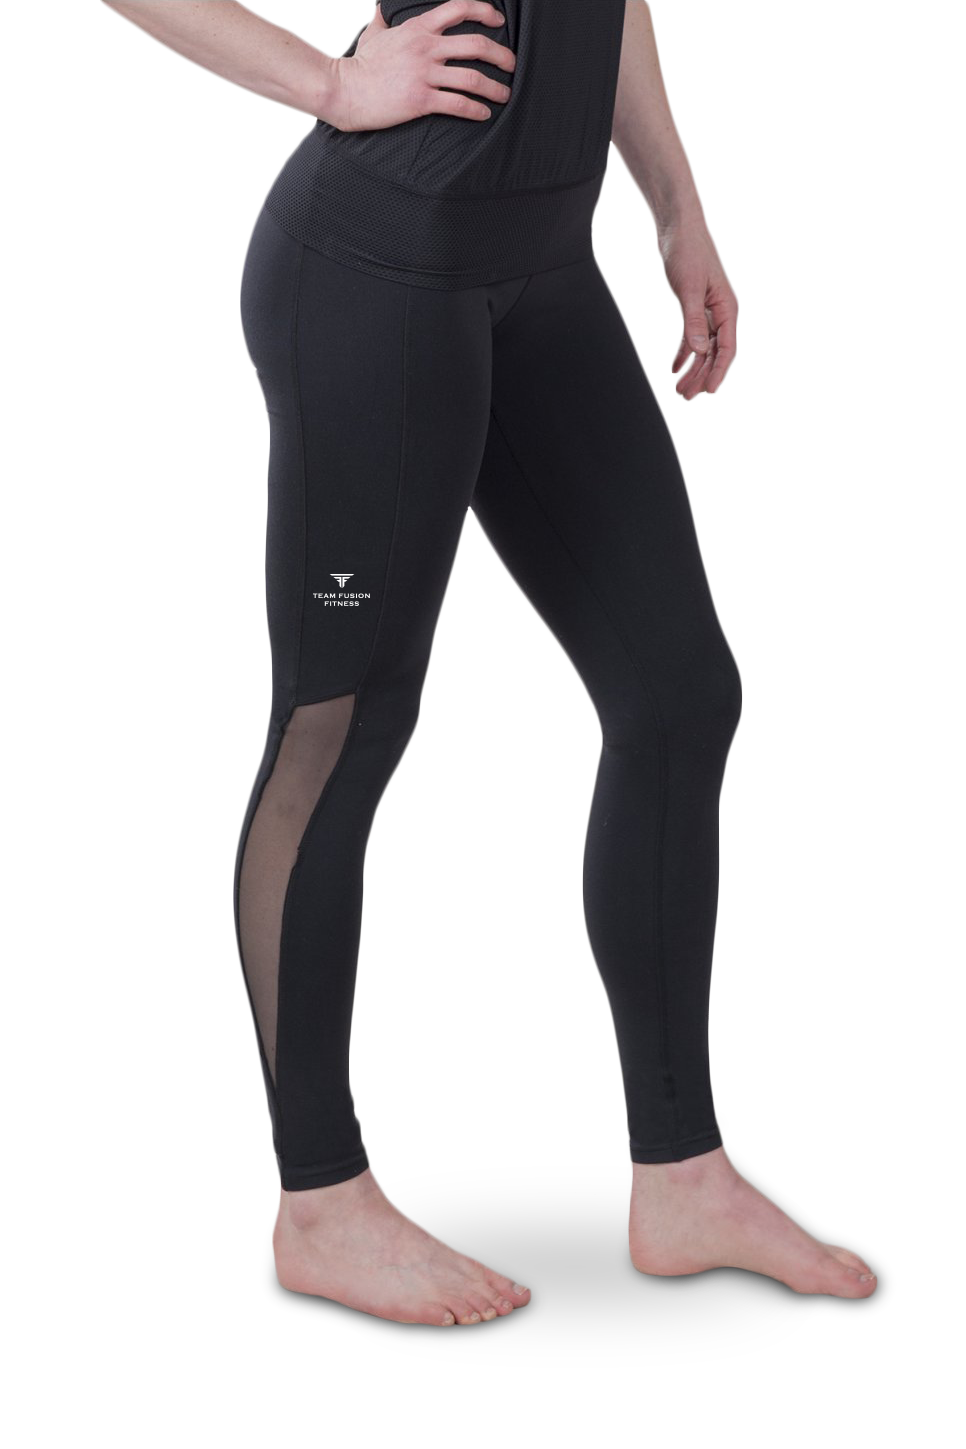 Woman - TF Fitness Leggings - Small Logo